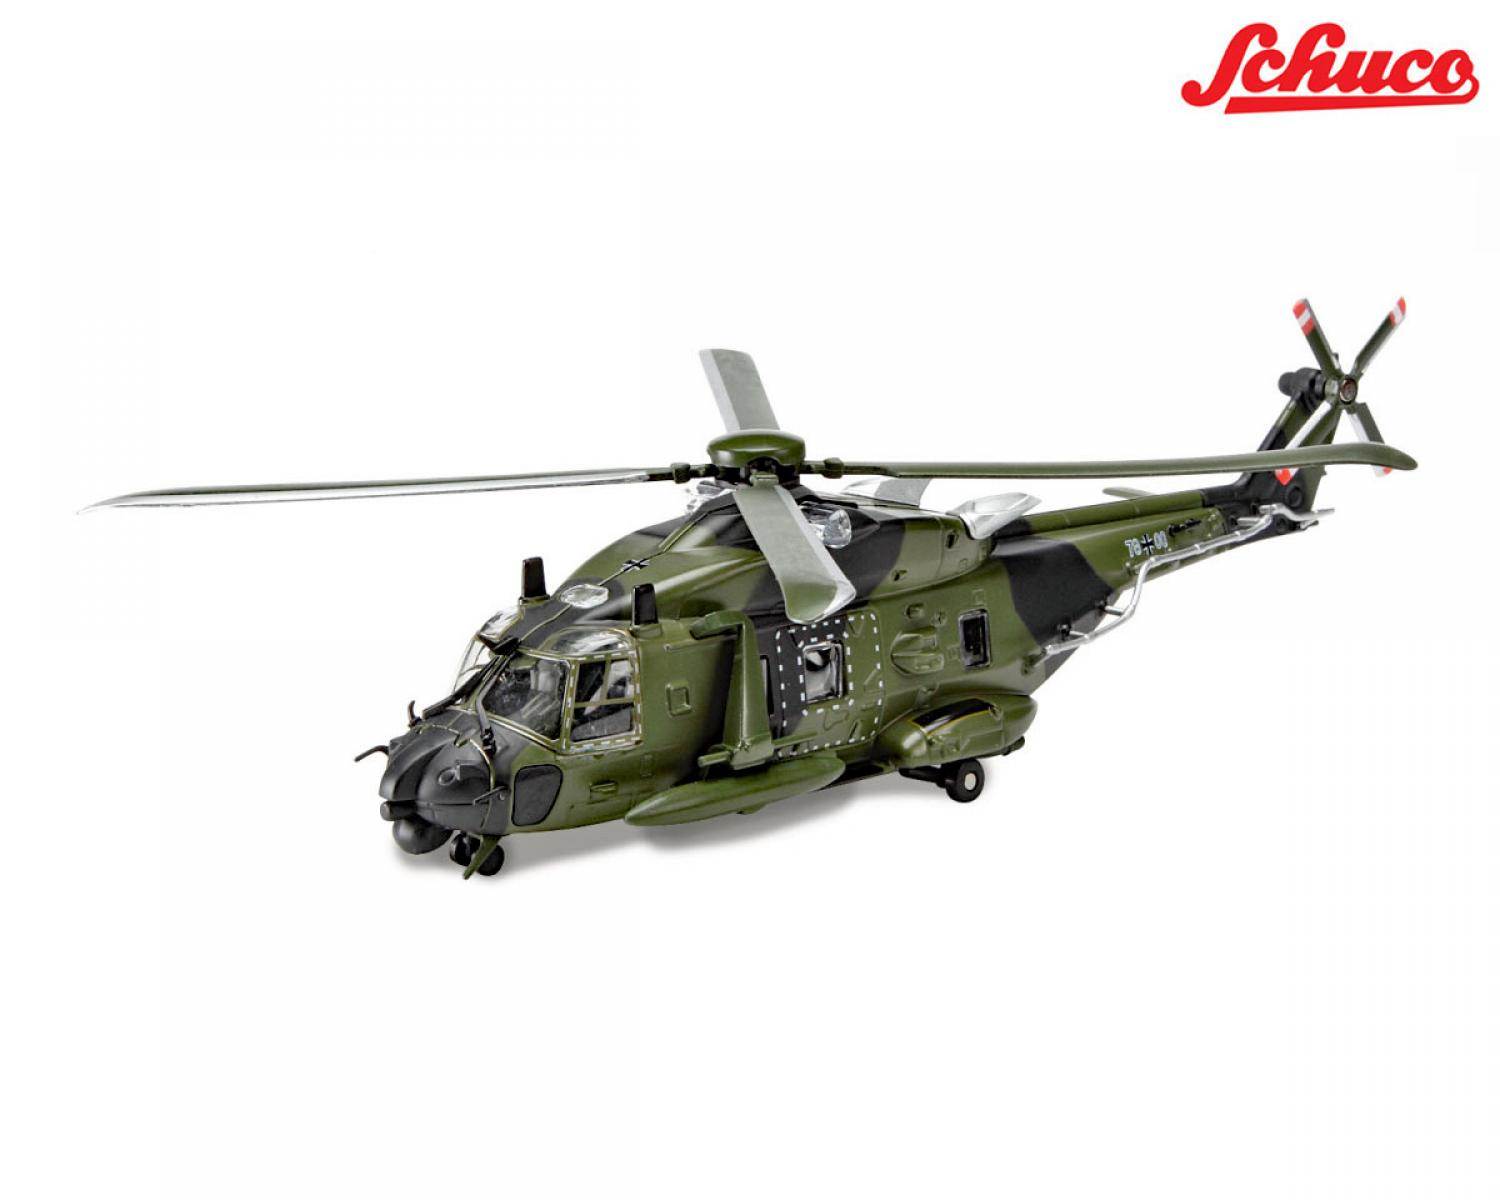 Schuco 26466 NH90 Helikopter BW 1:87